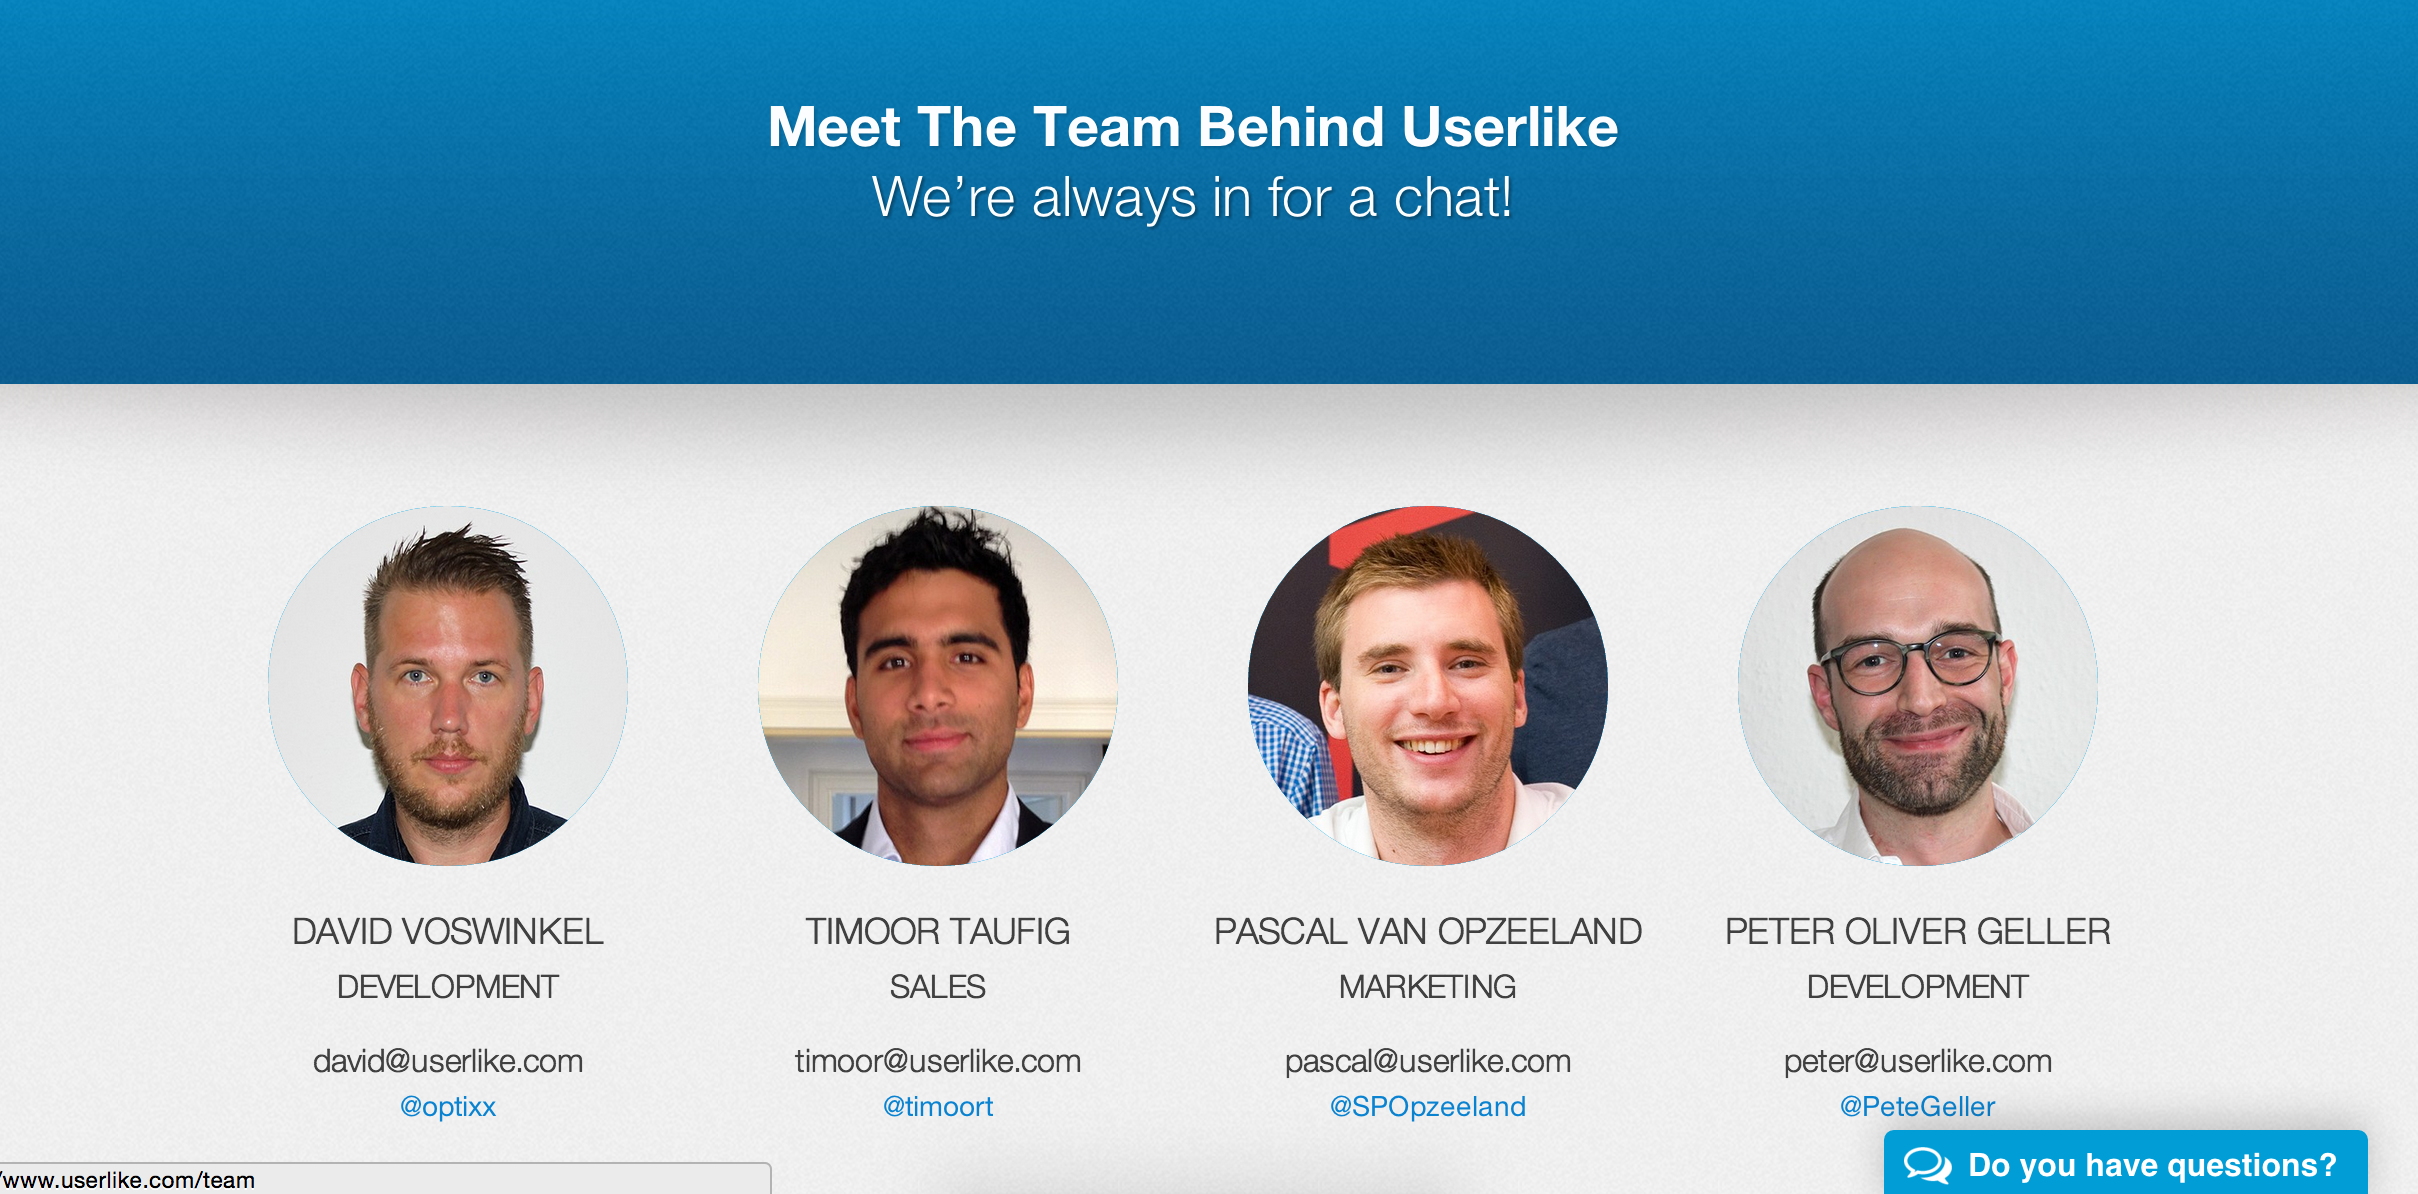 Userlike team page